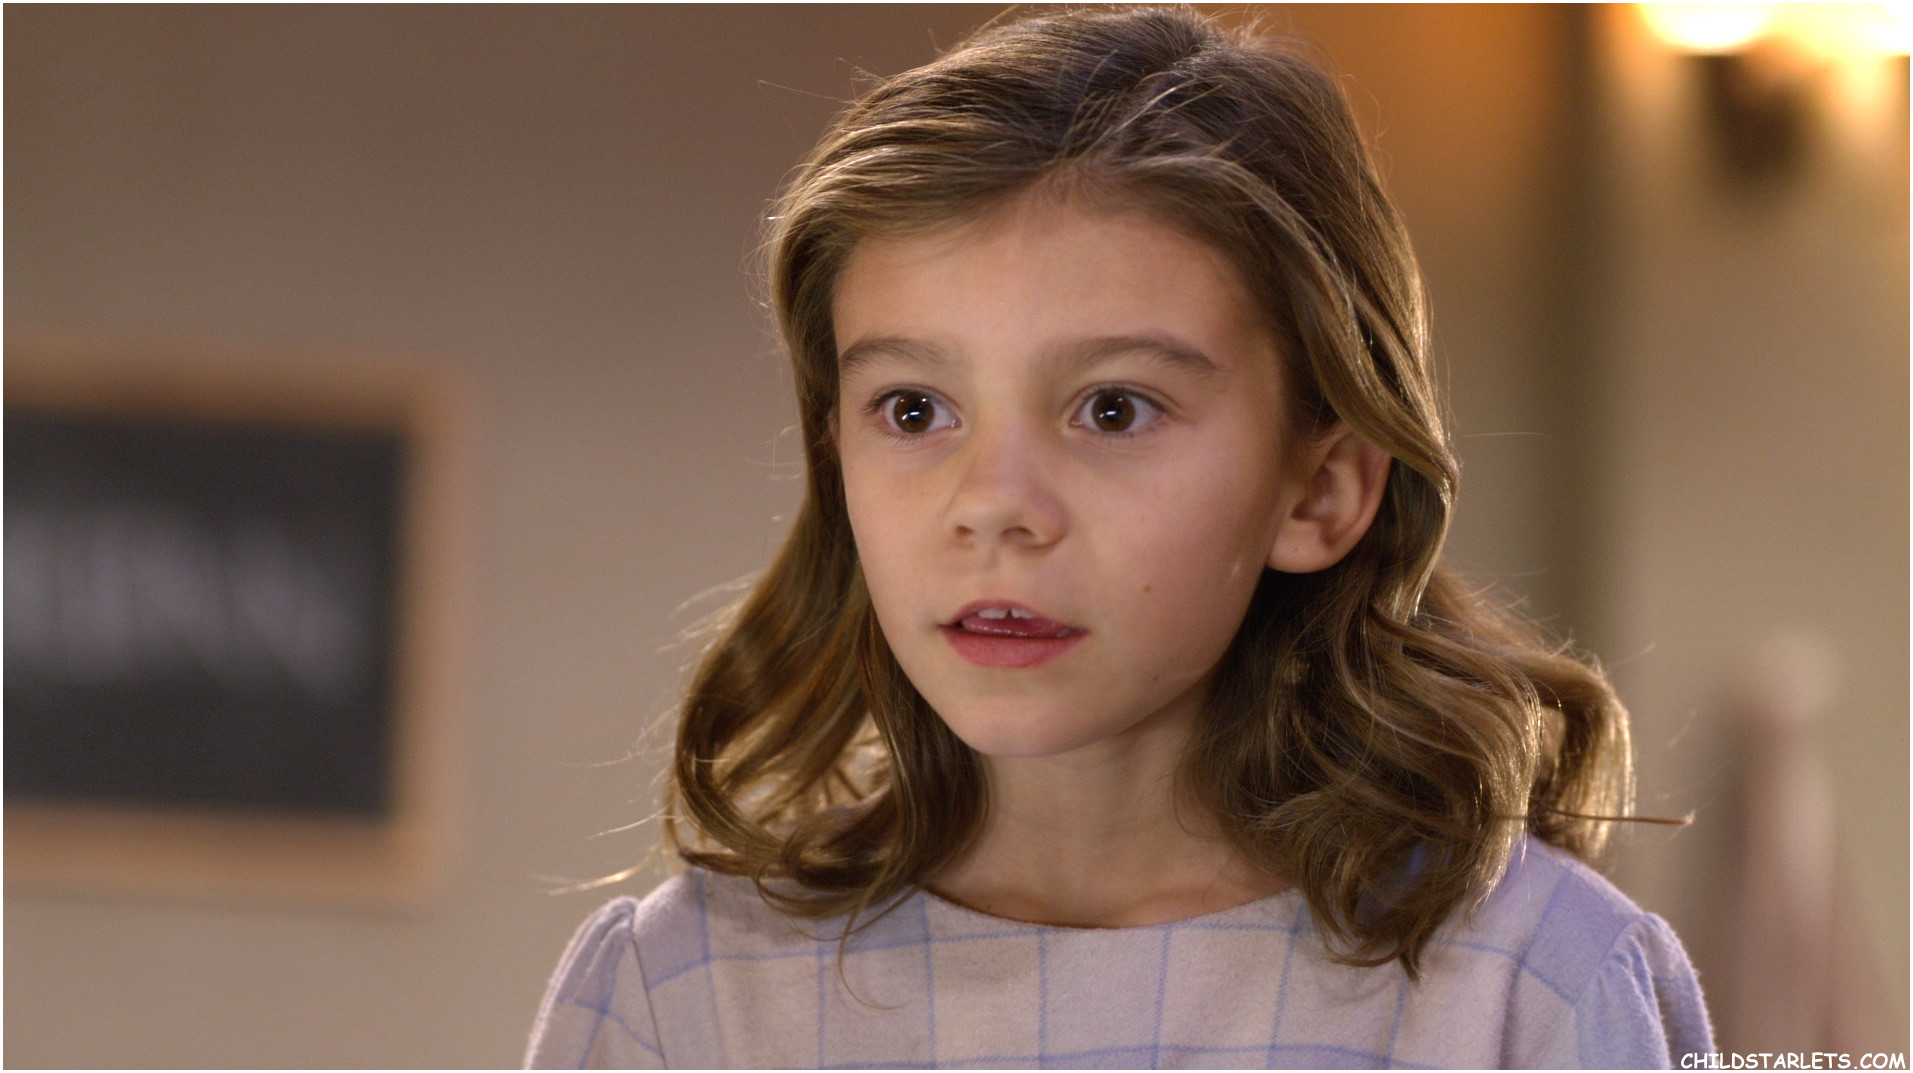 91977c2001 G. Hannelius - New Photos | Image Digital Great